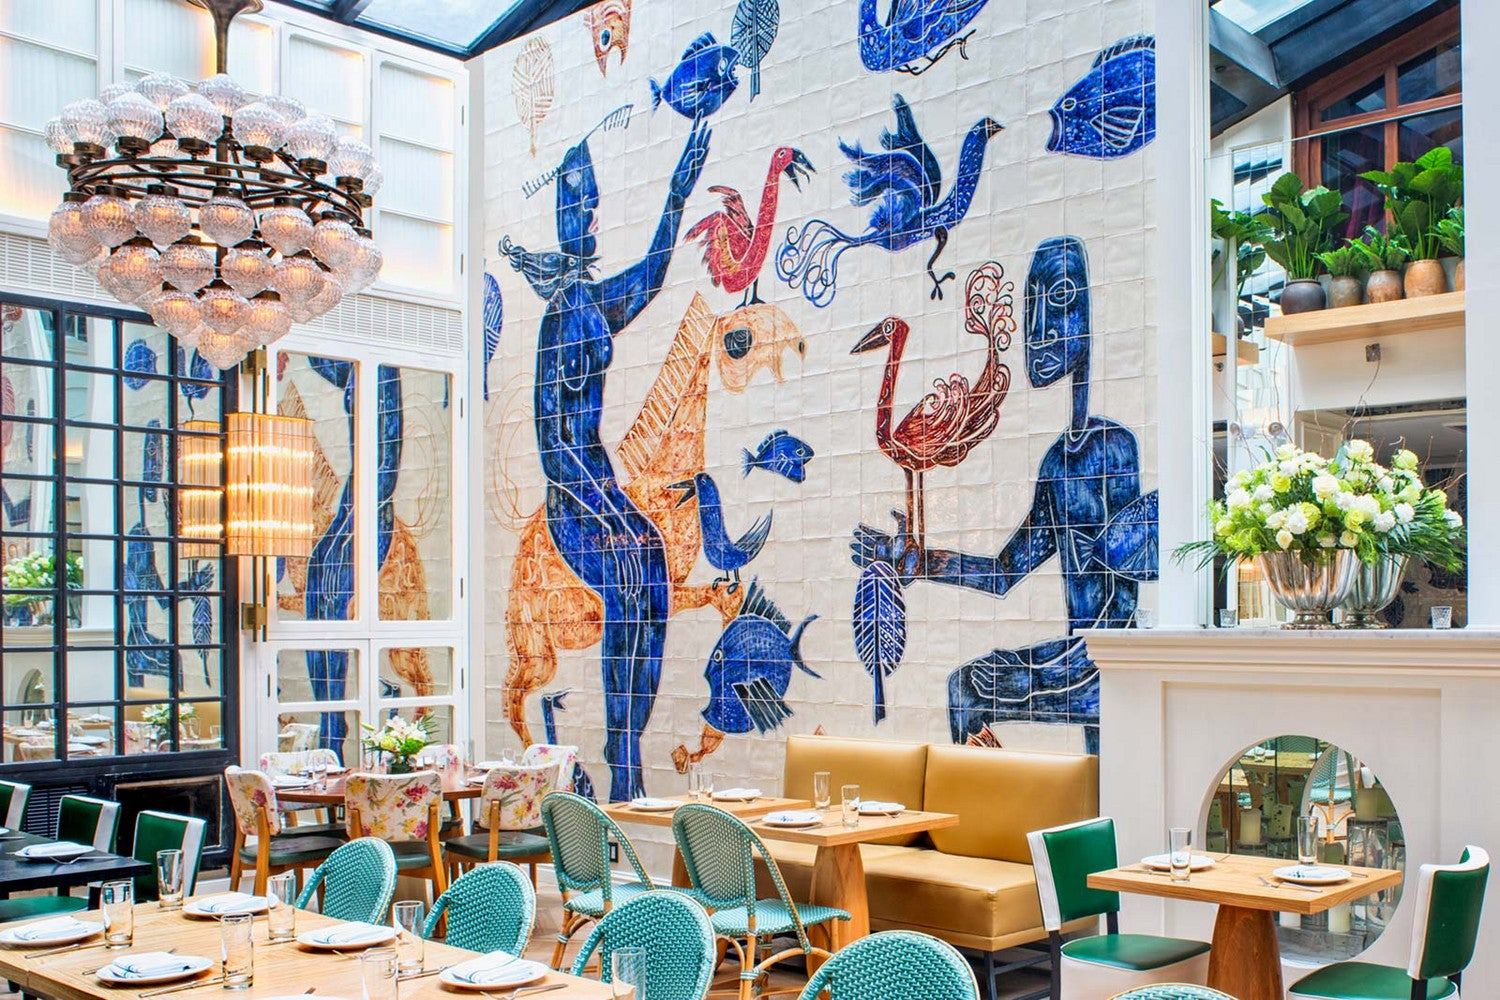 The Most Insanely Colorful Restaurants on Earth